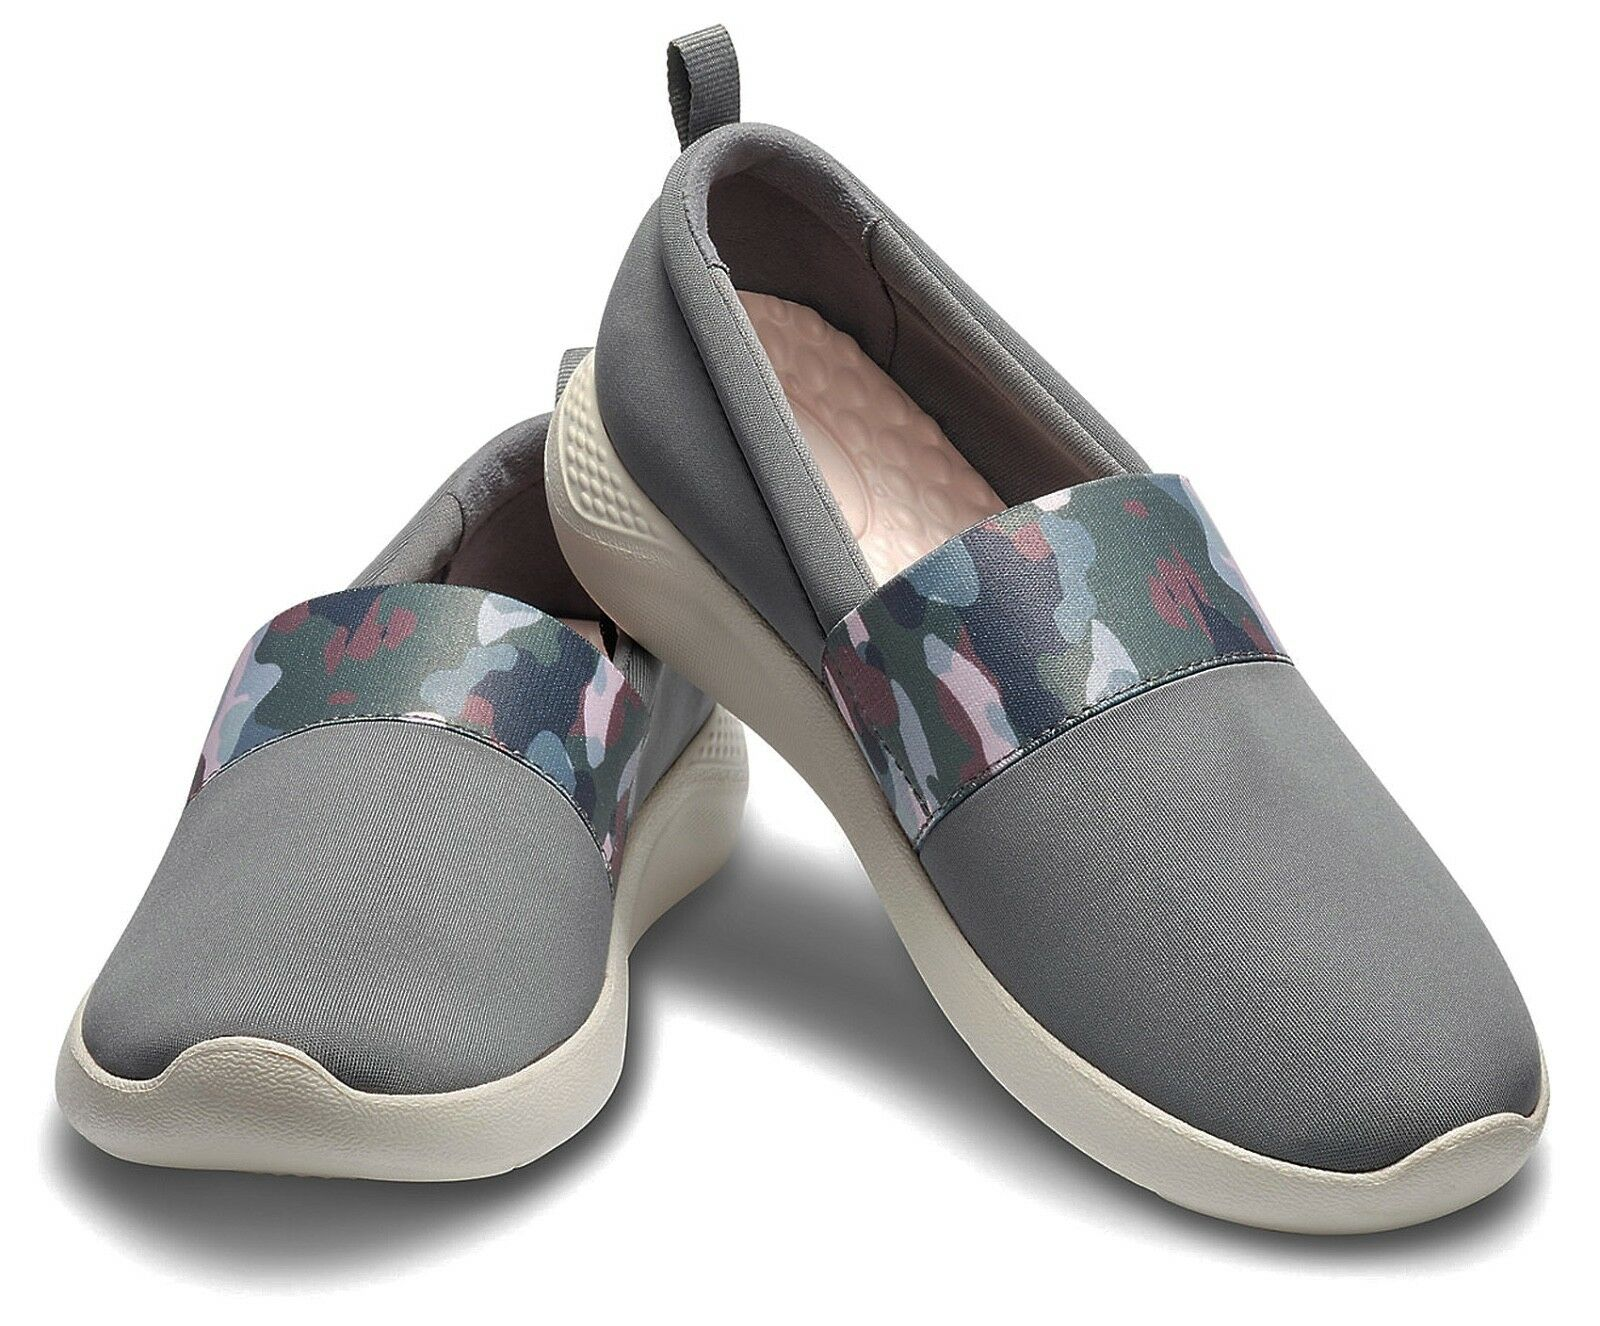 Crocs NEW grey Literide Graphic slip on grey NEW camo comfort shoes trainers UK size 3-9 7fb1fc